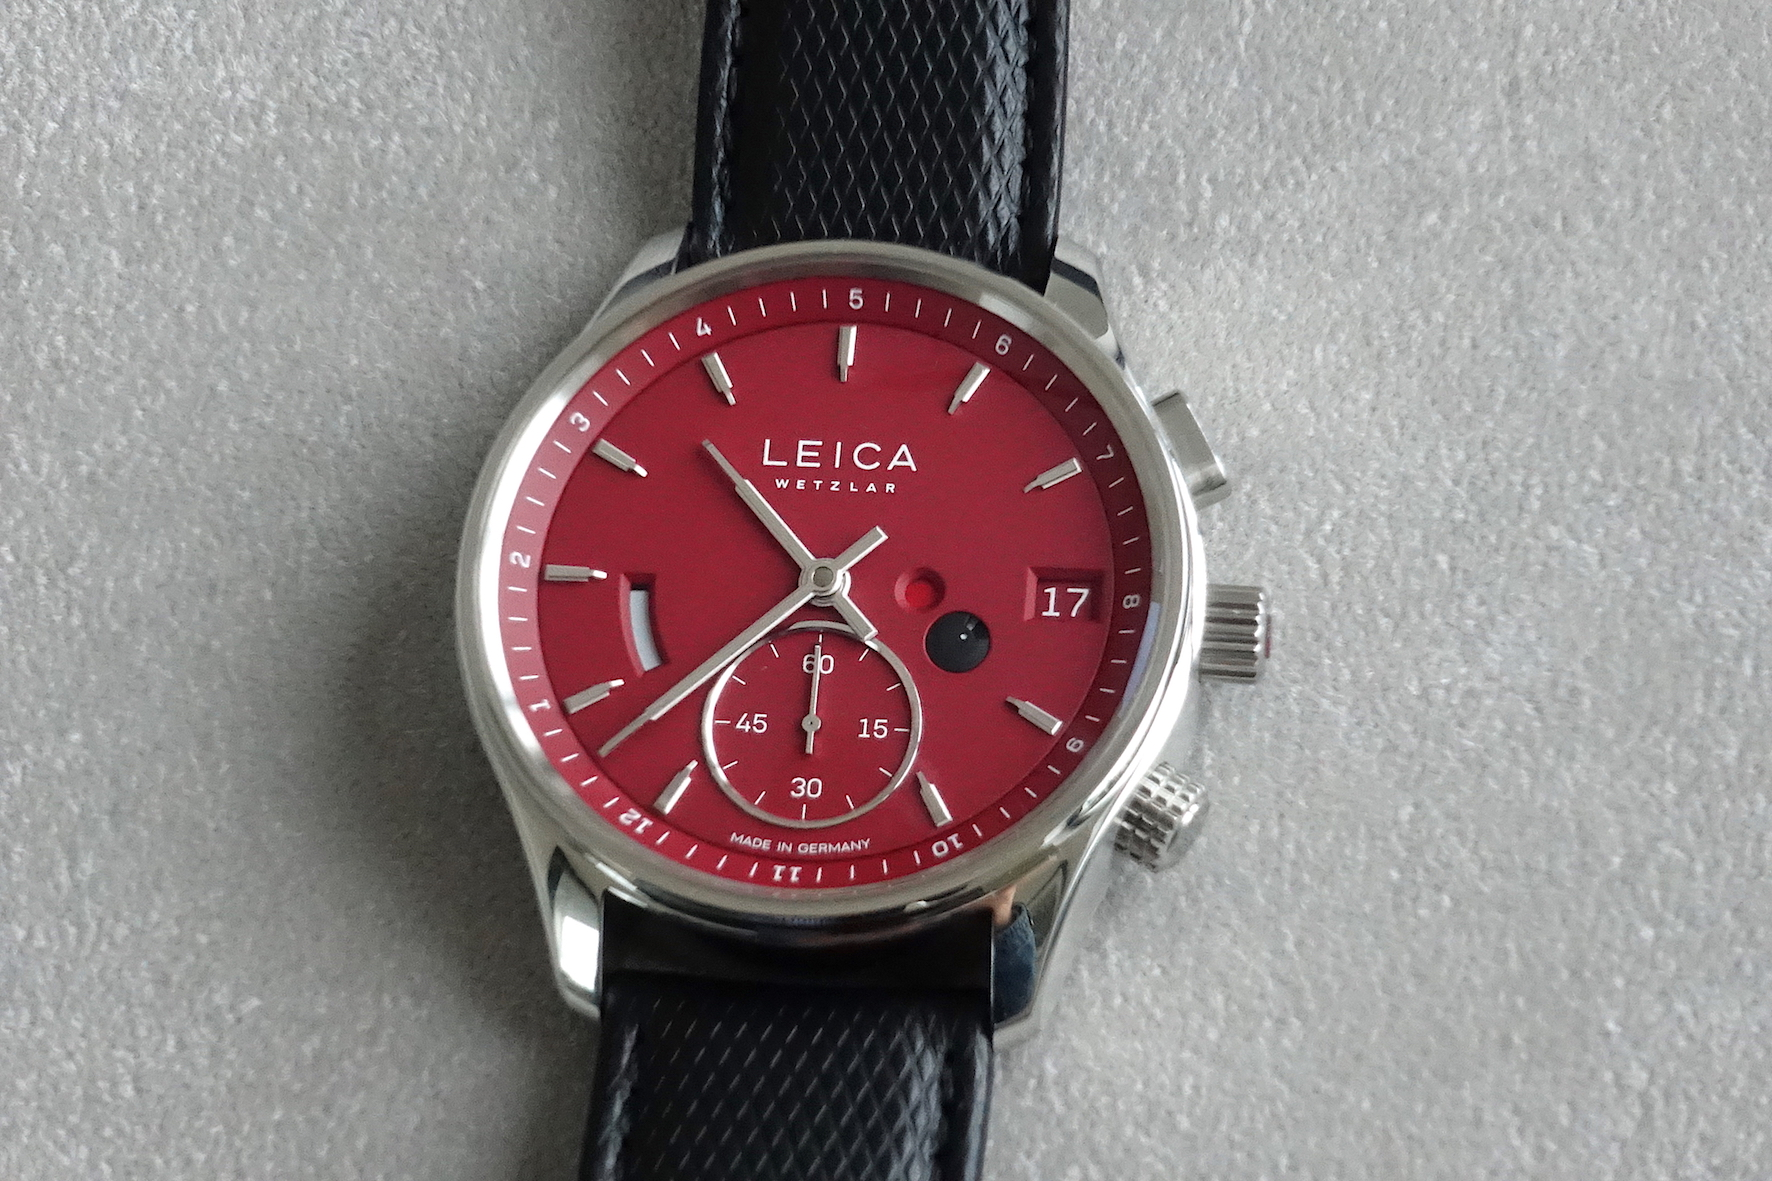 Leica L2 red when the Zero-Reset is activated (little red dot on the dial)